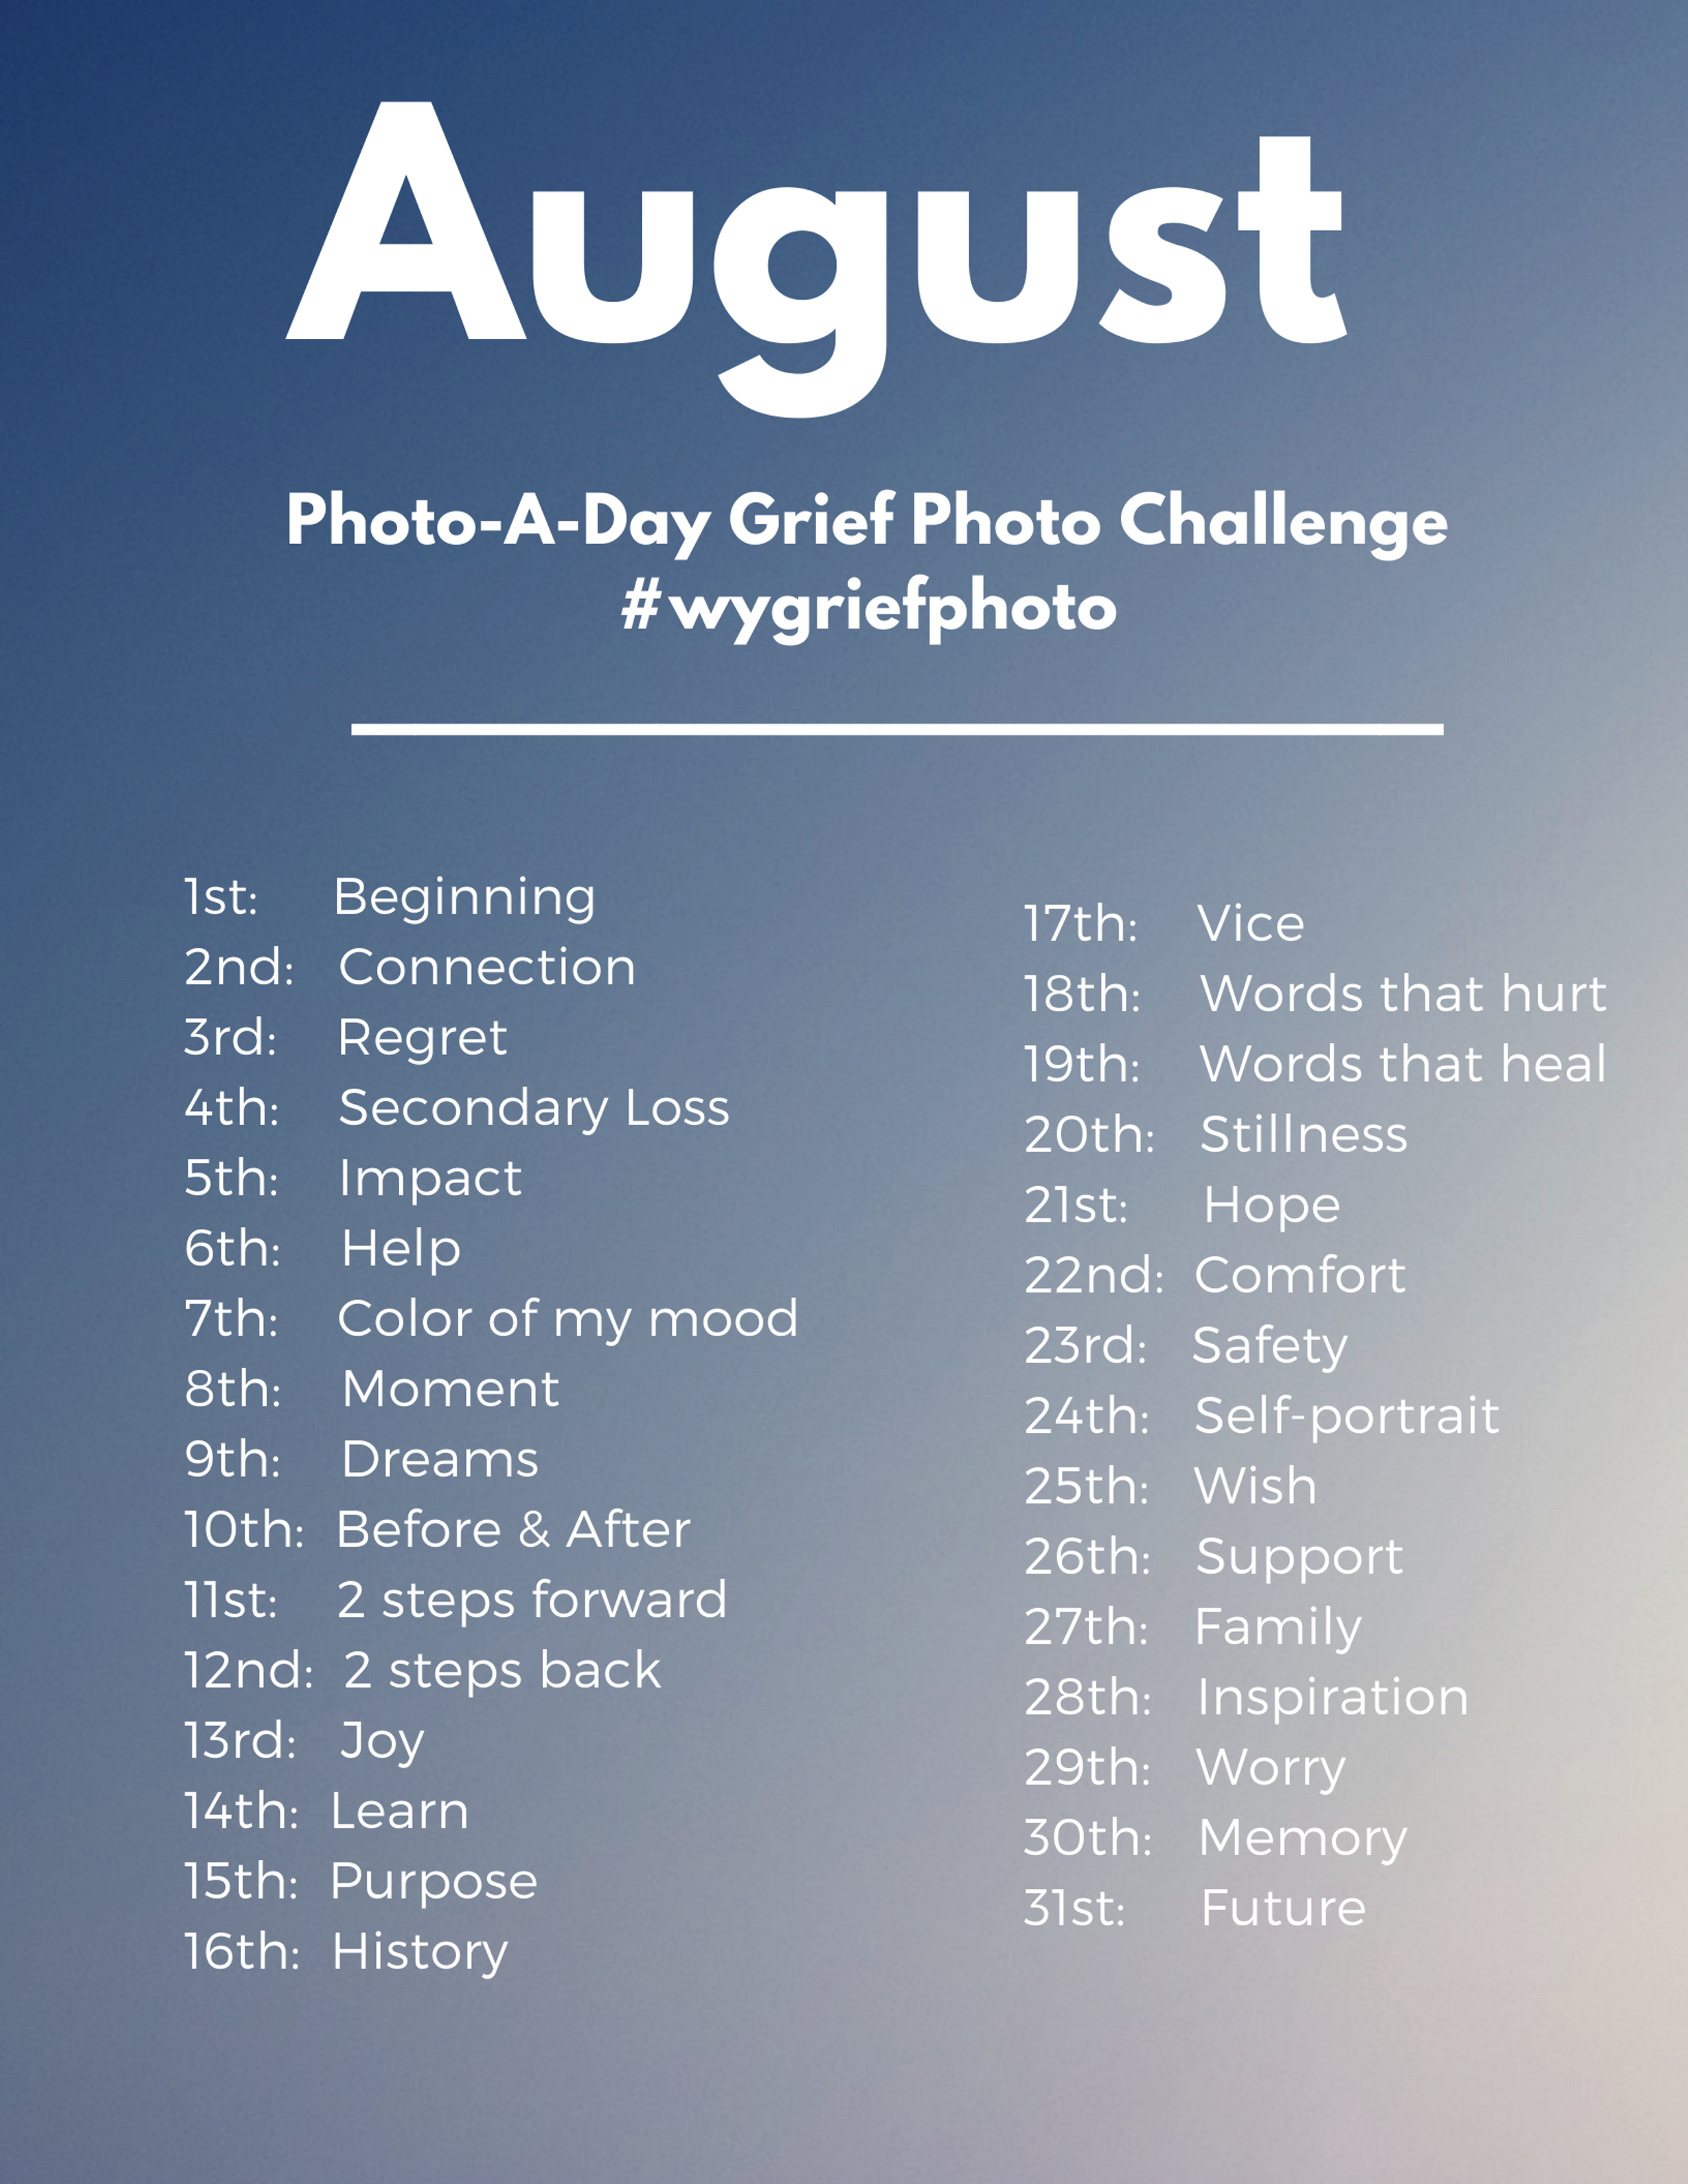 august photo-a-day grief photo challenge prompts